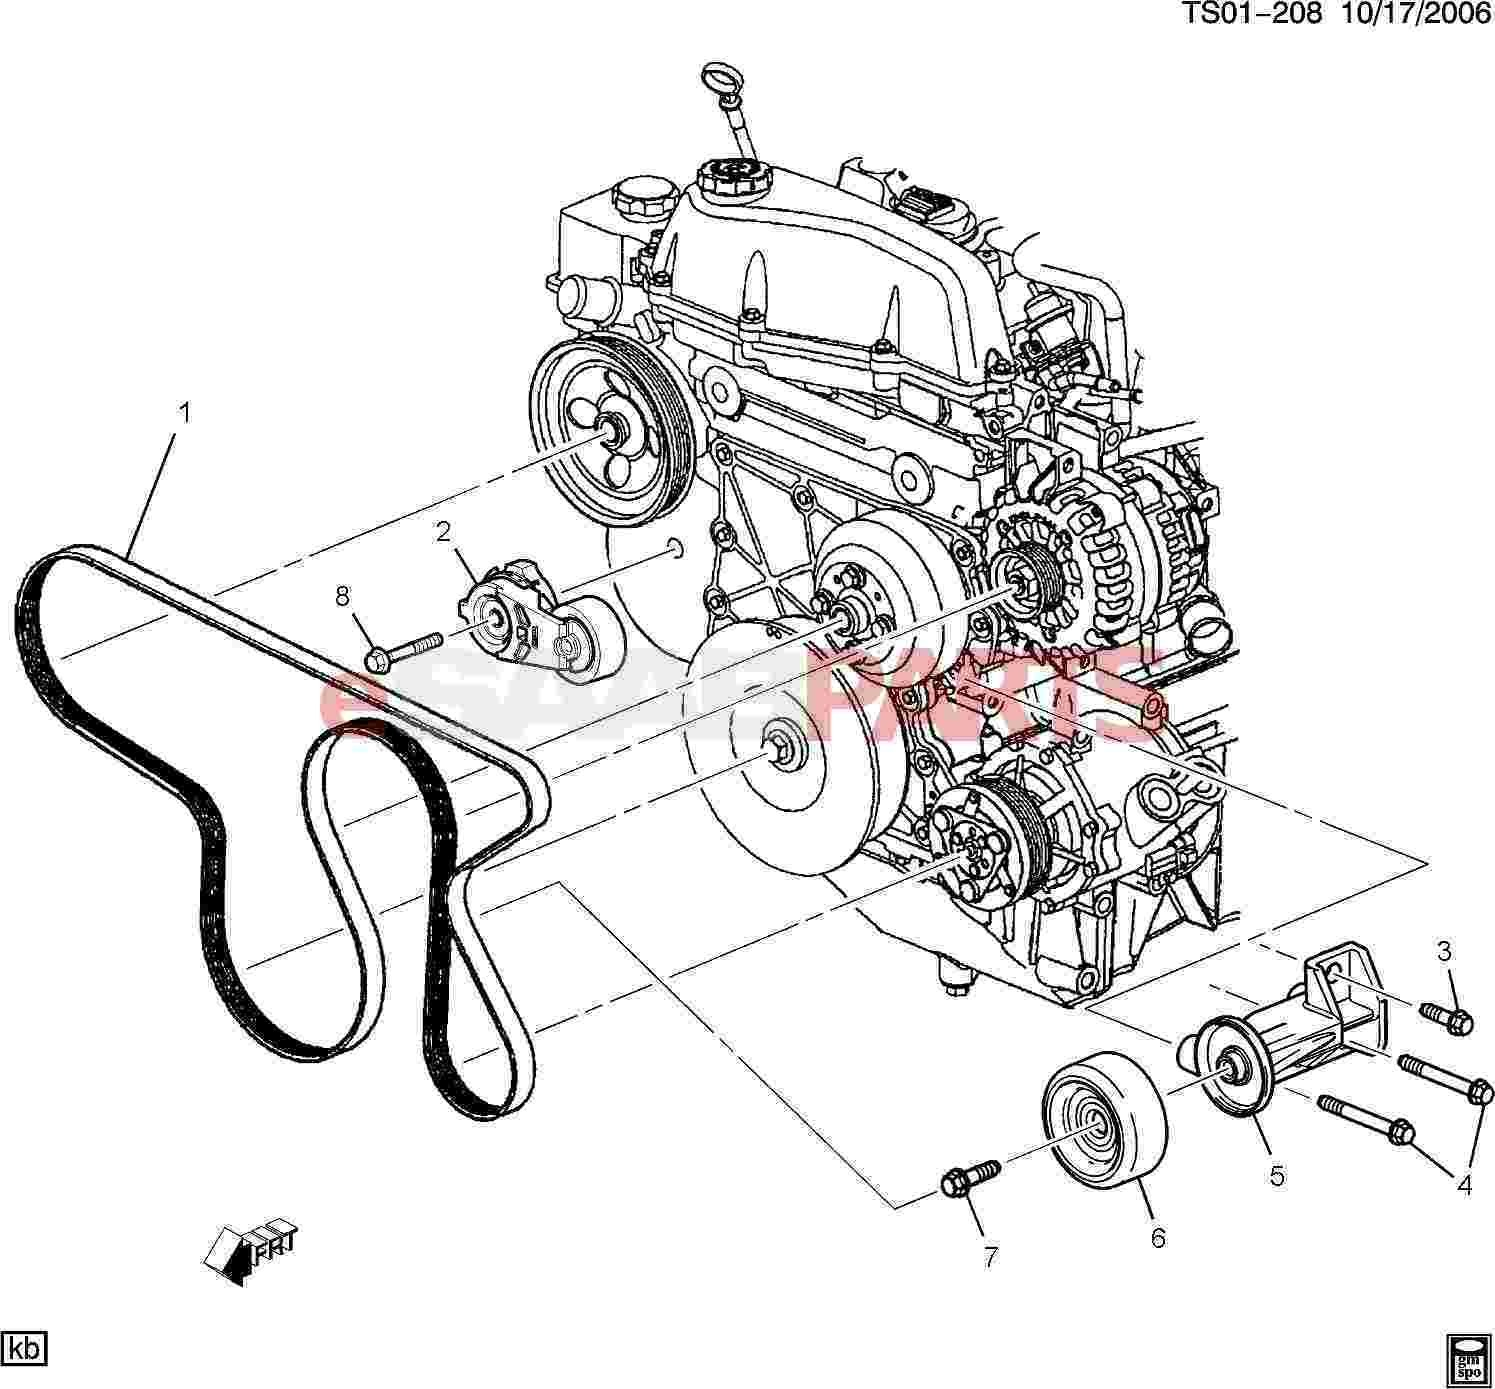 2003 chevy blazer engine diagram 1997 chevy blazer fuel